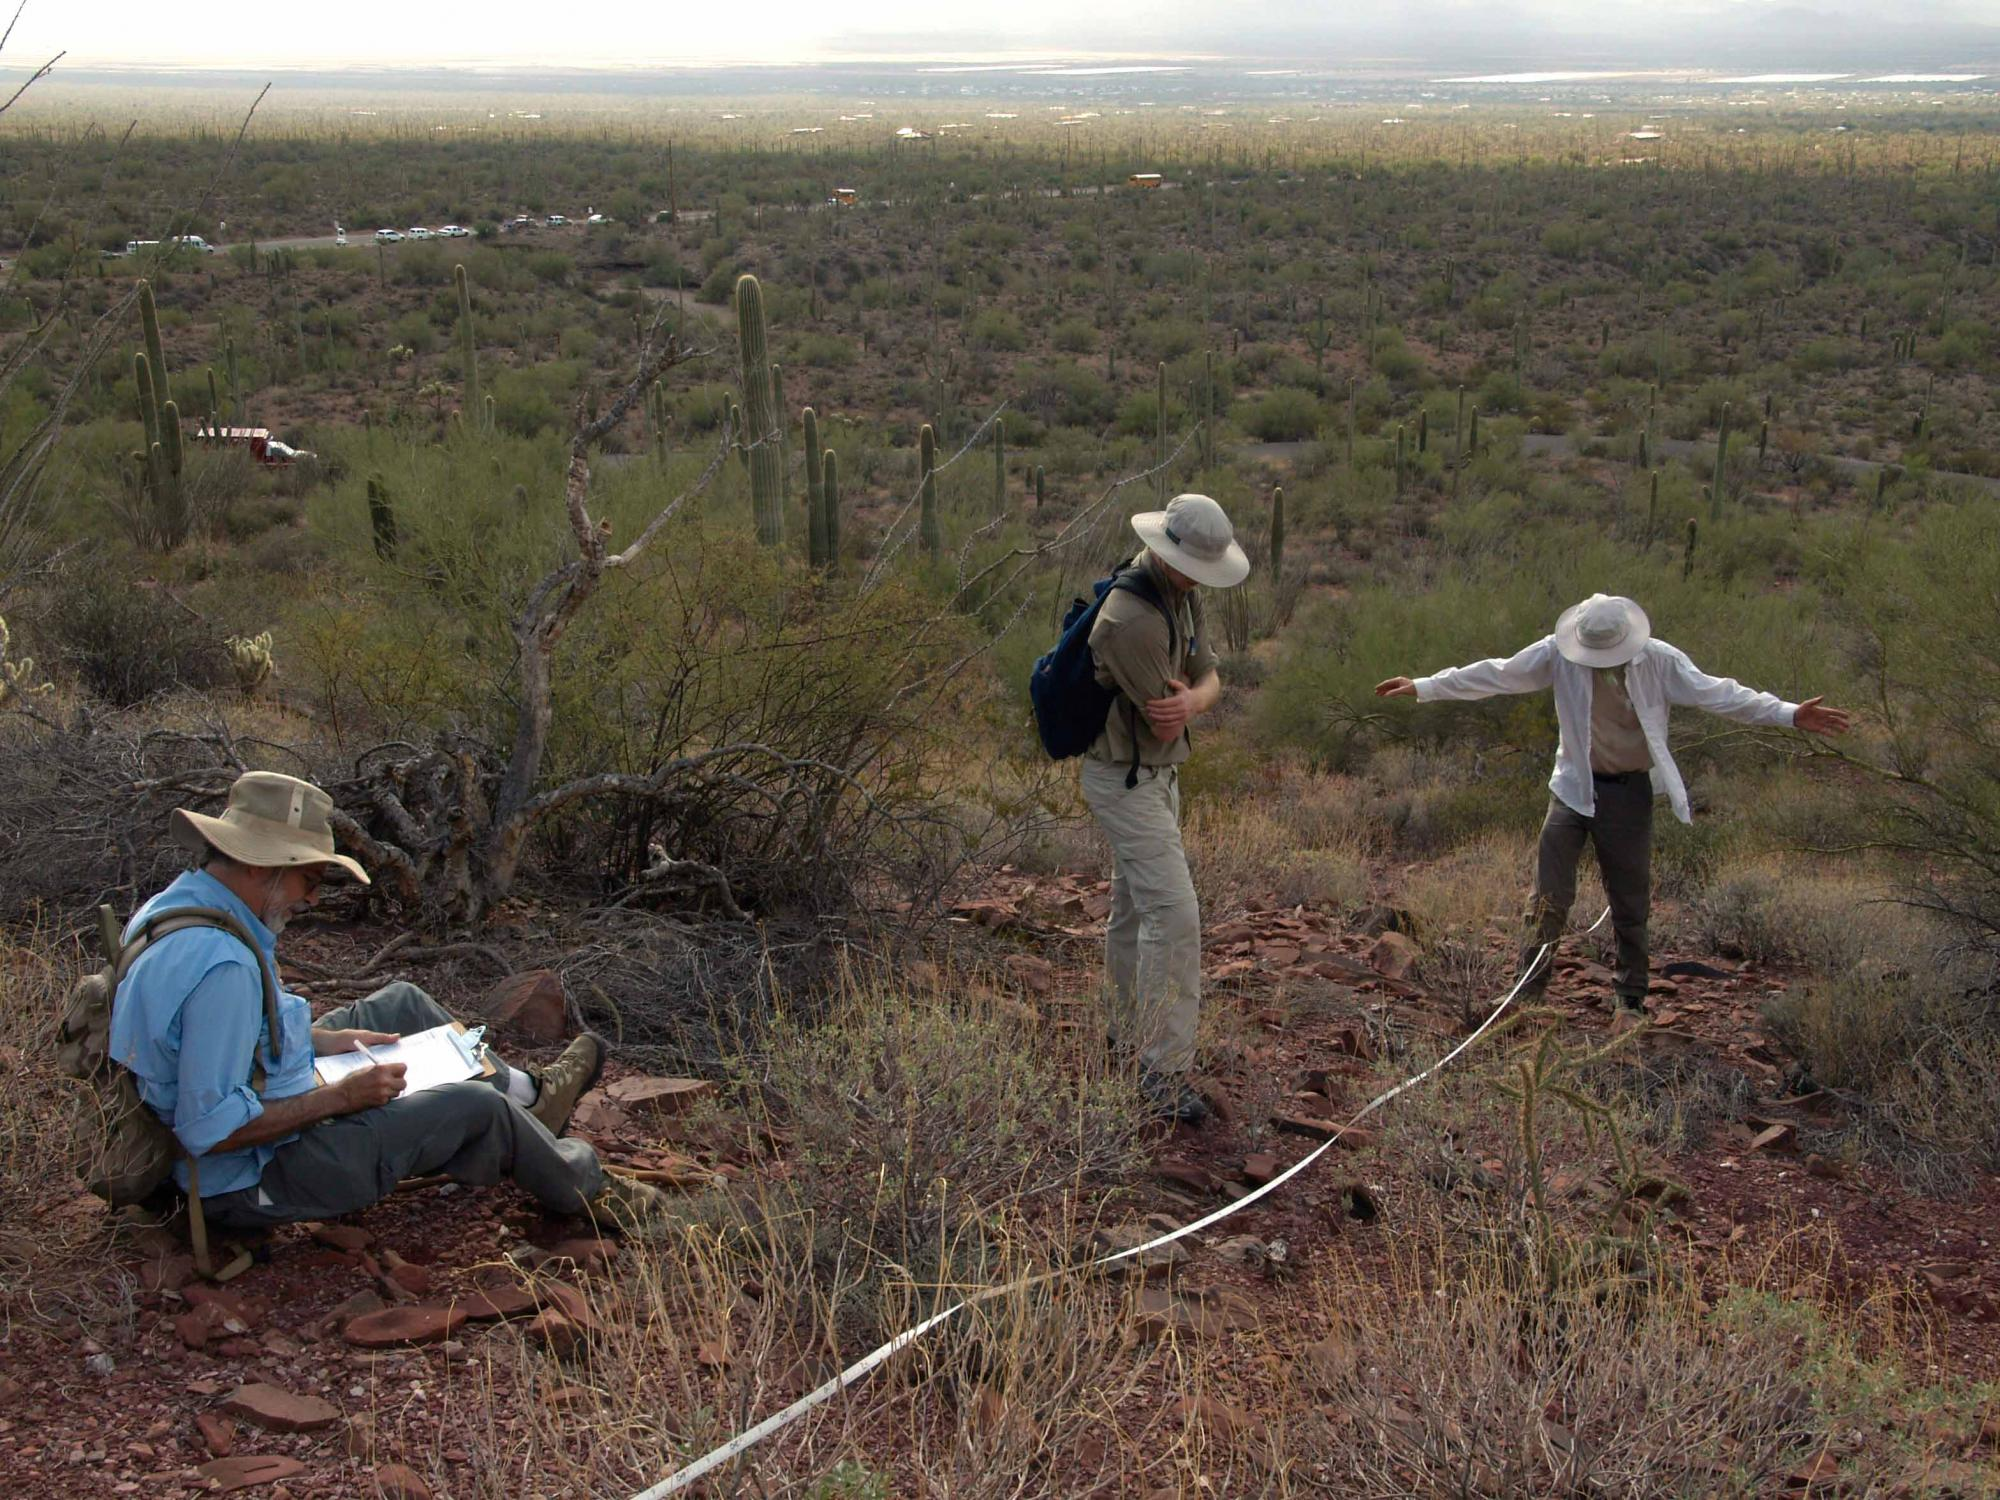 BioBlitz volunteers record plants growing along a transect line.